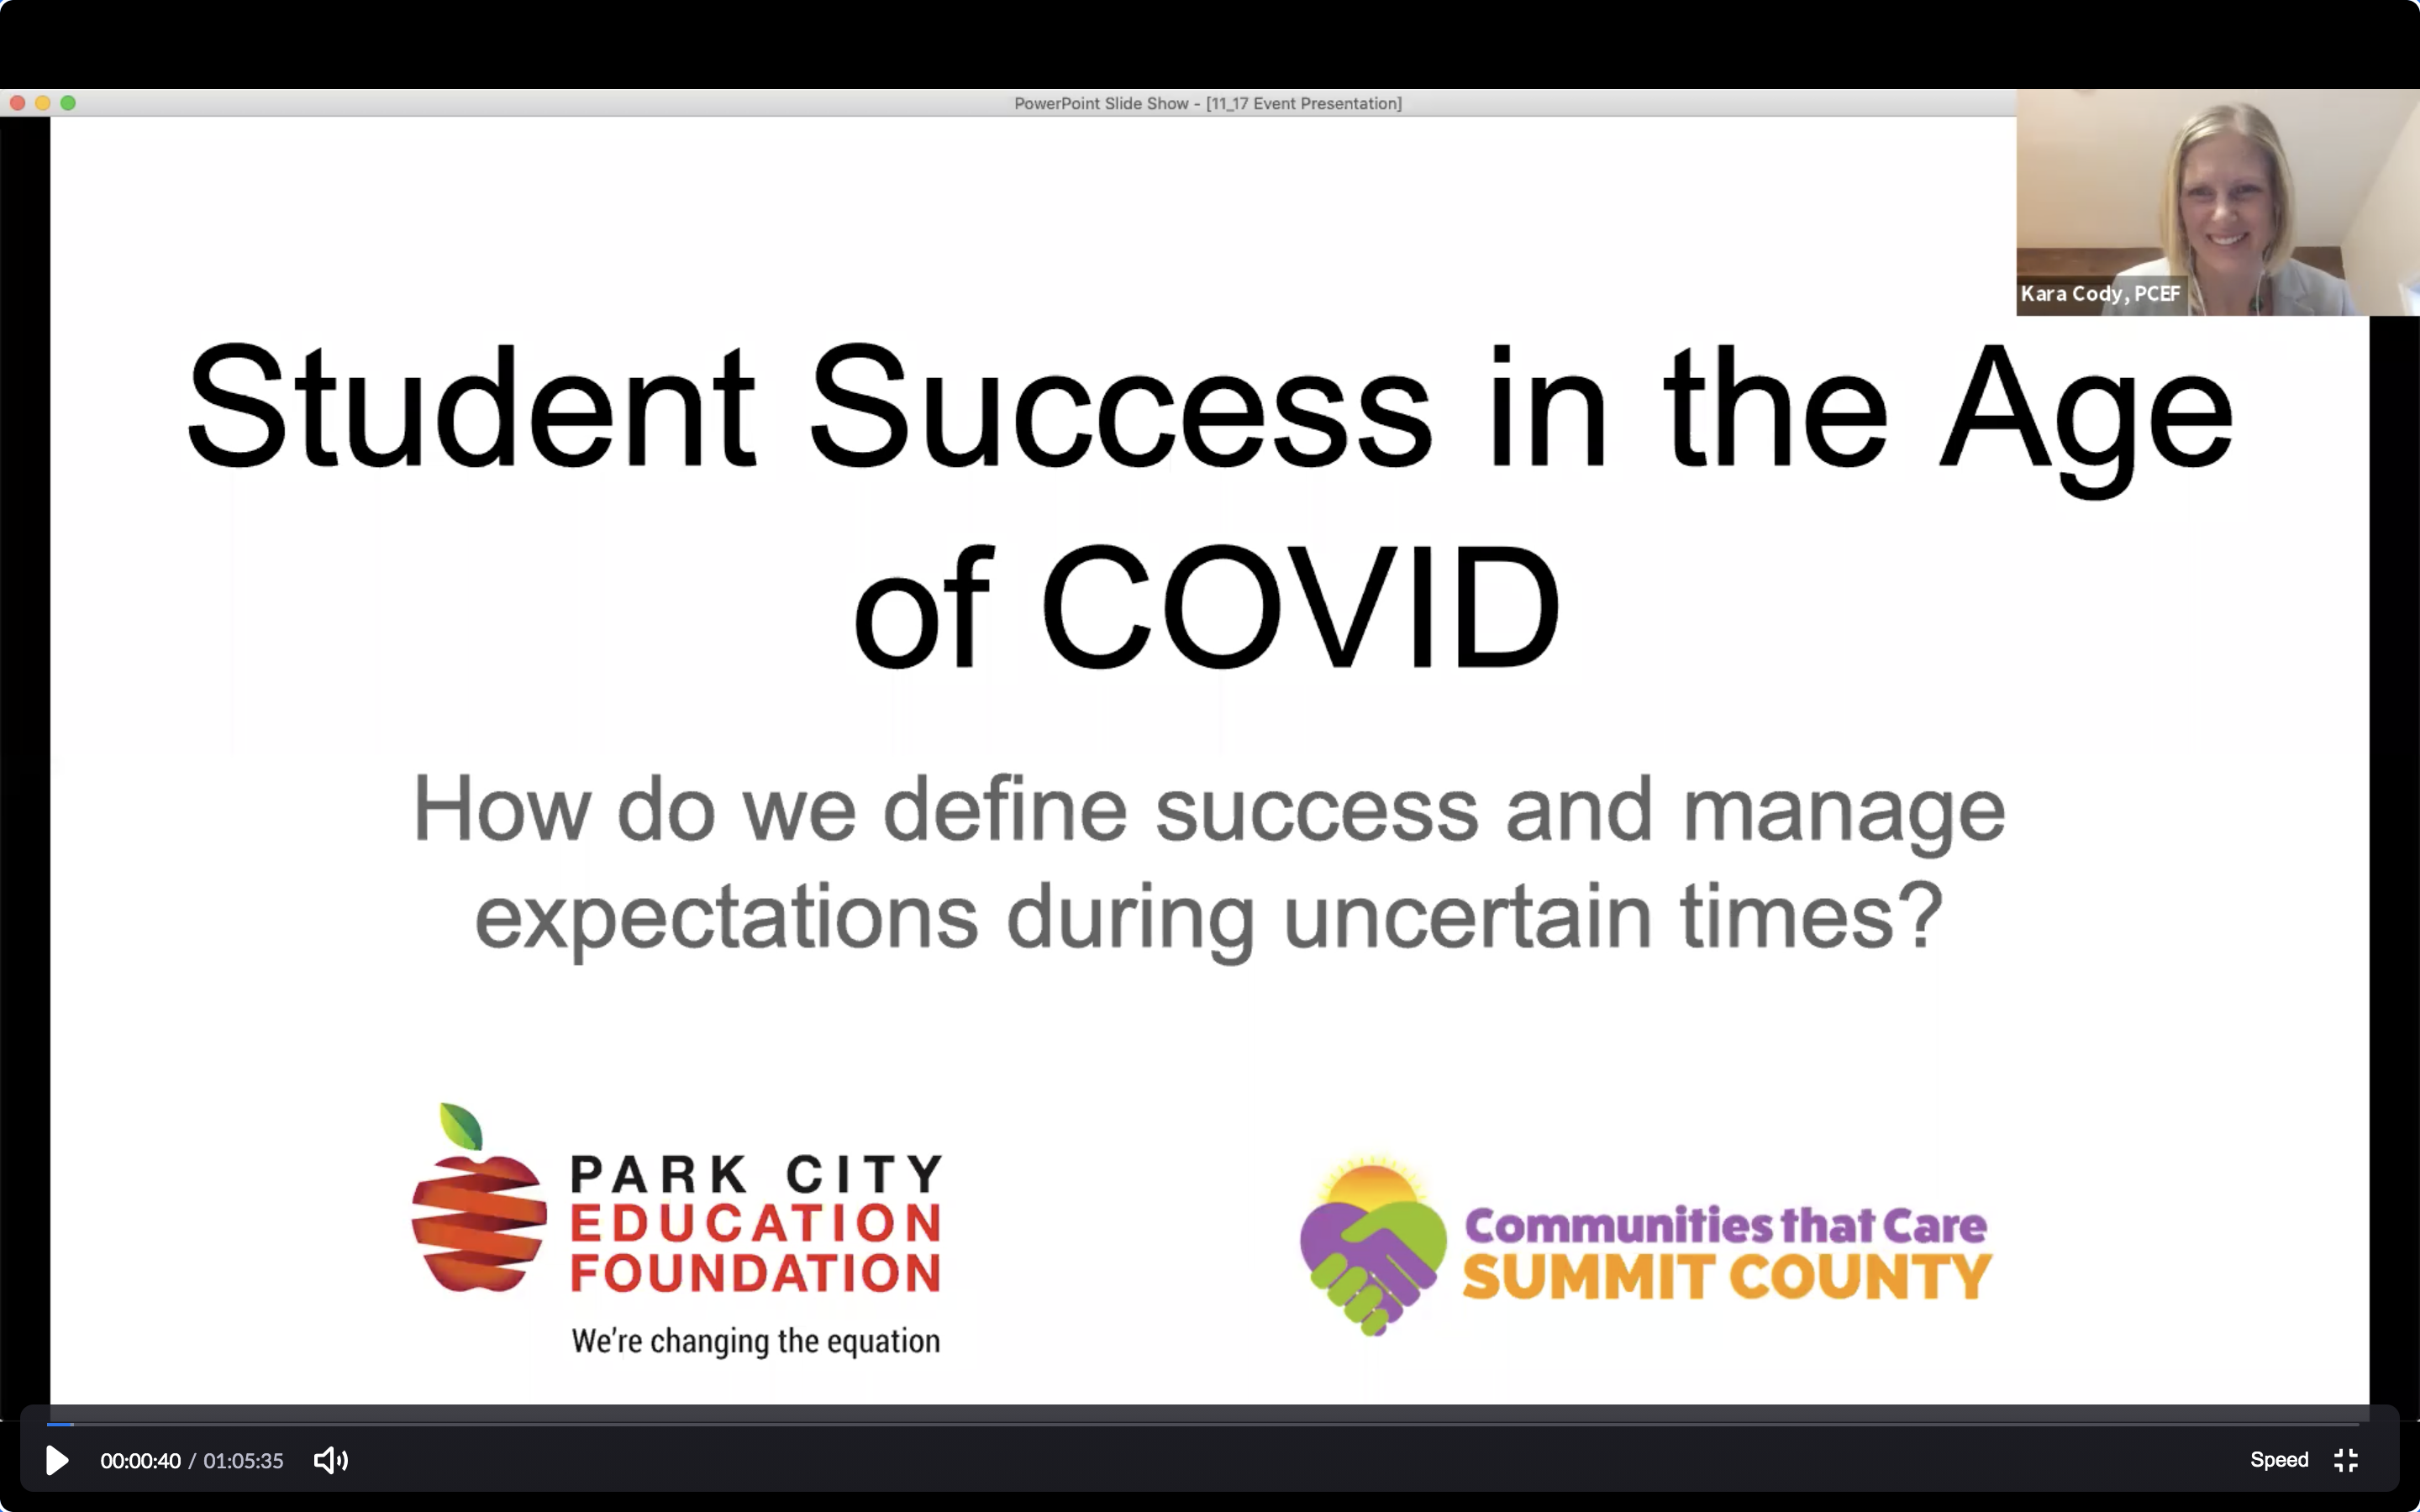 Redefining Success in the Age of COVID